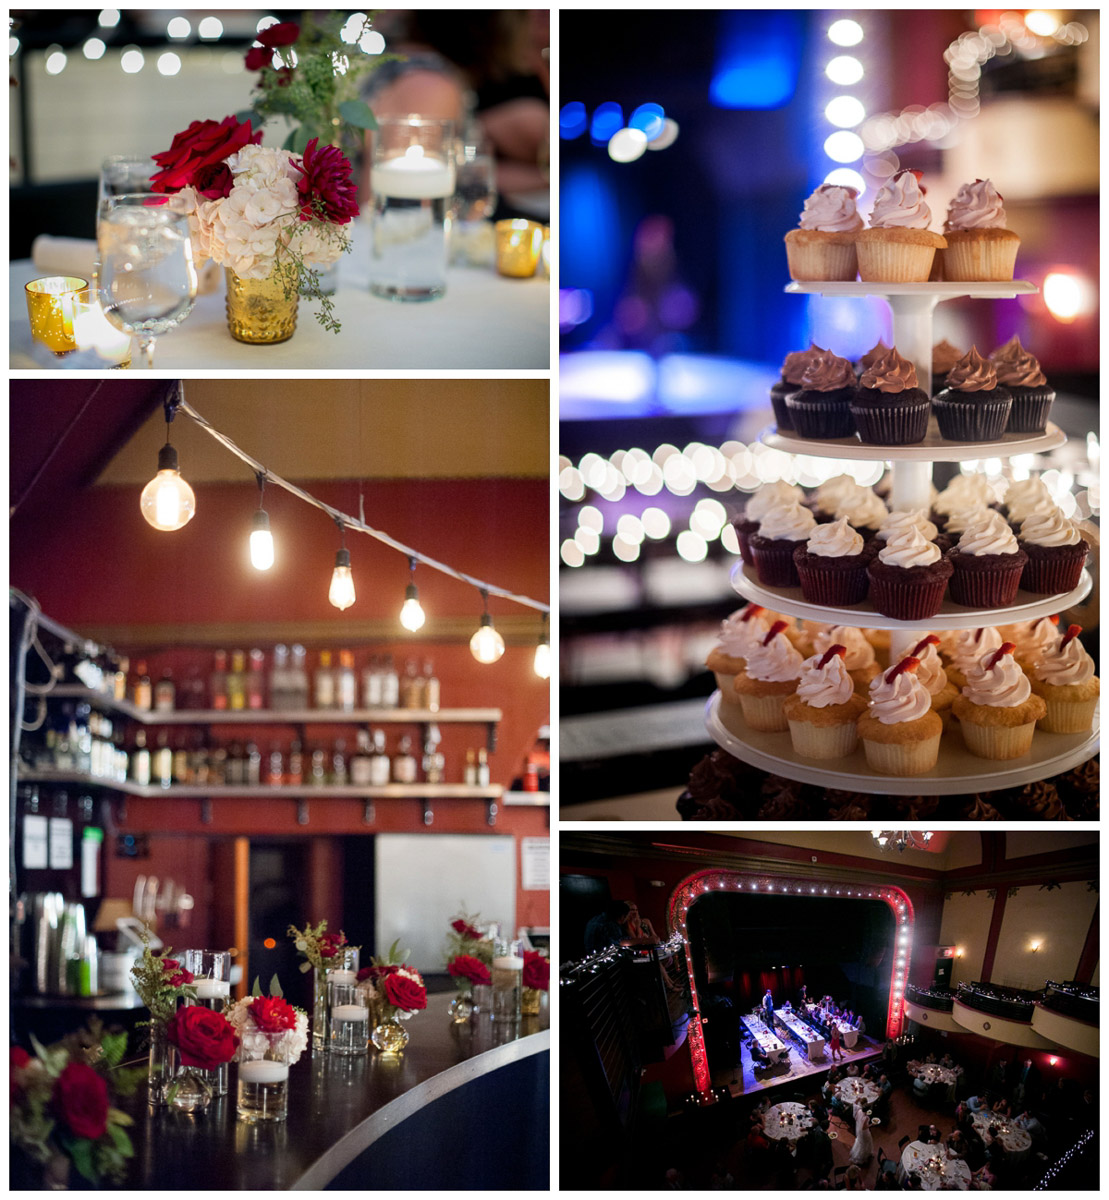 details at majestic theater wedding